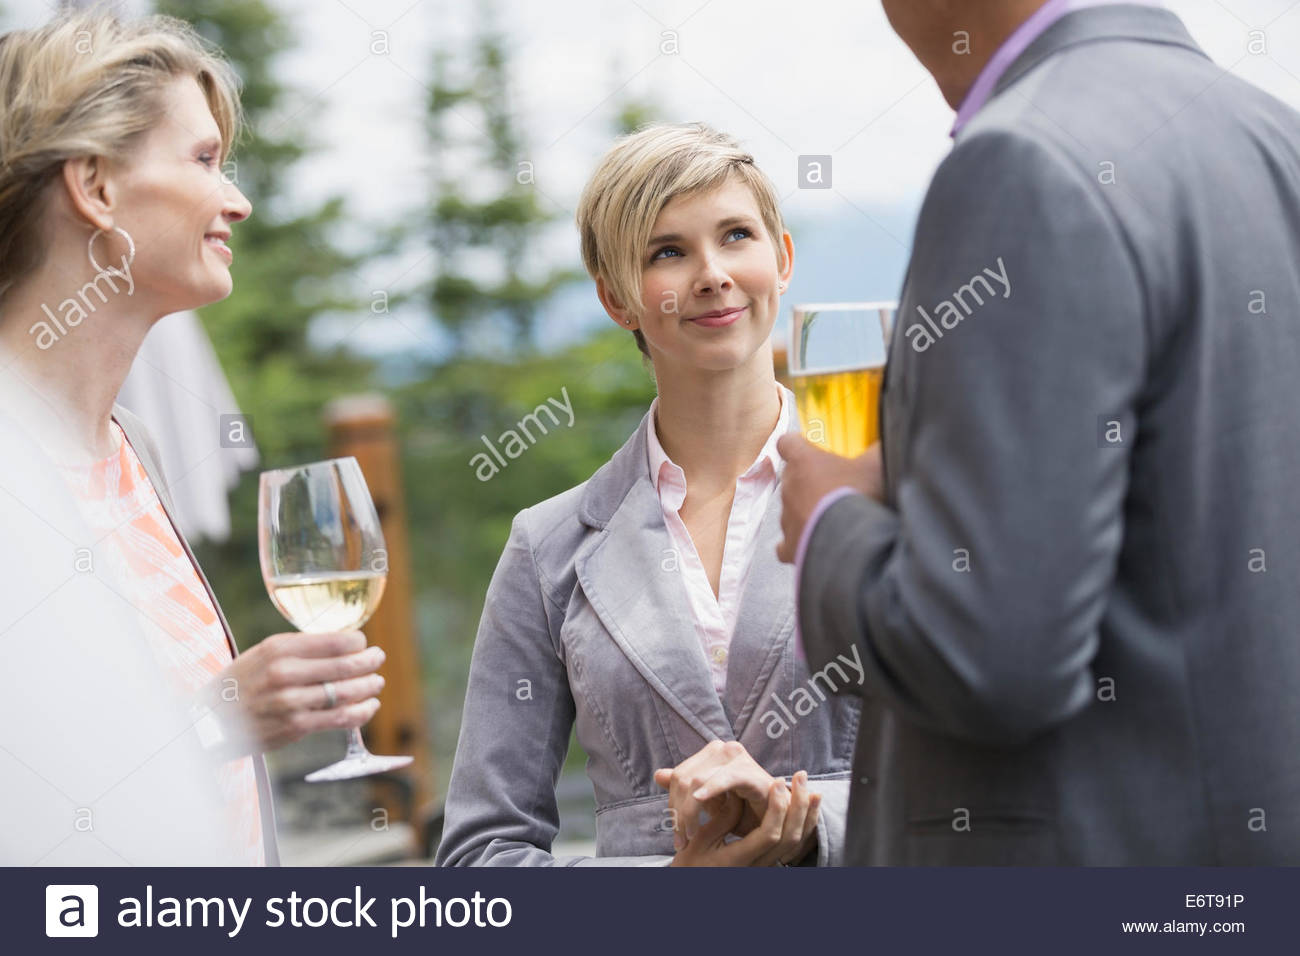 Business people talking at networking event Banque D'Images